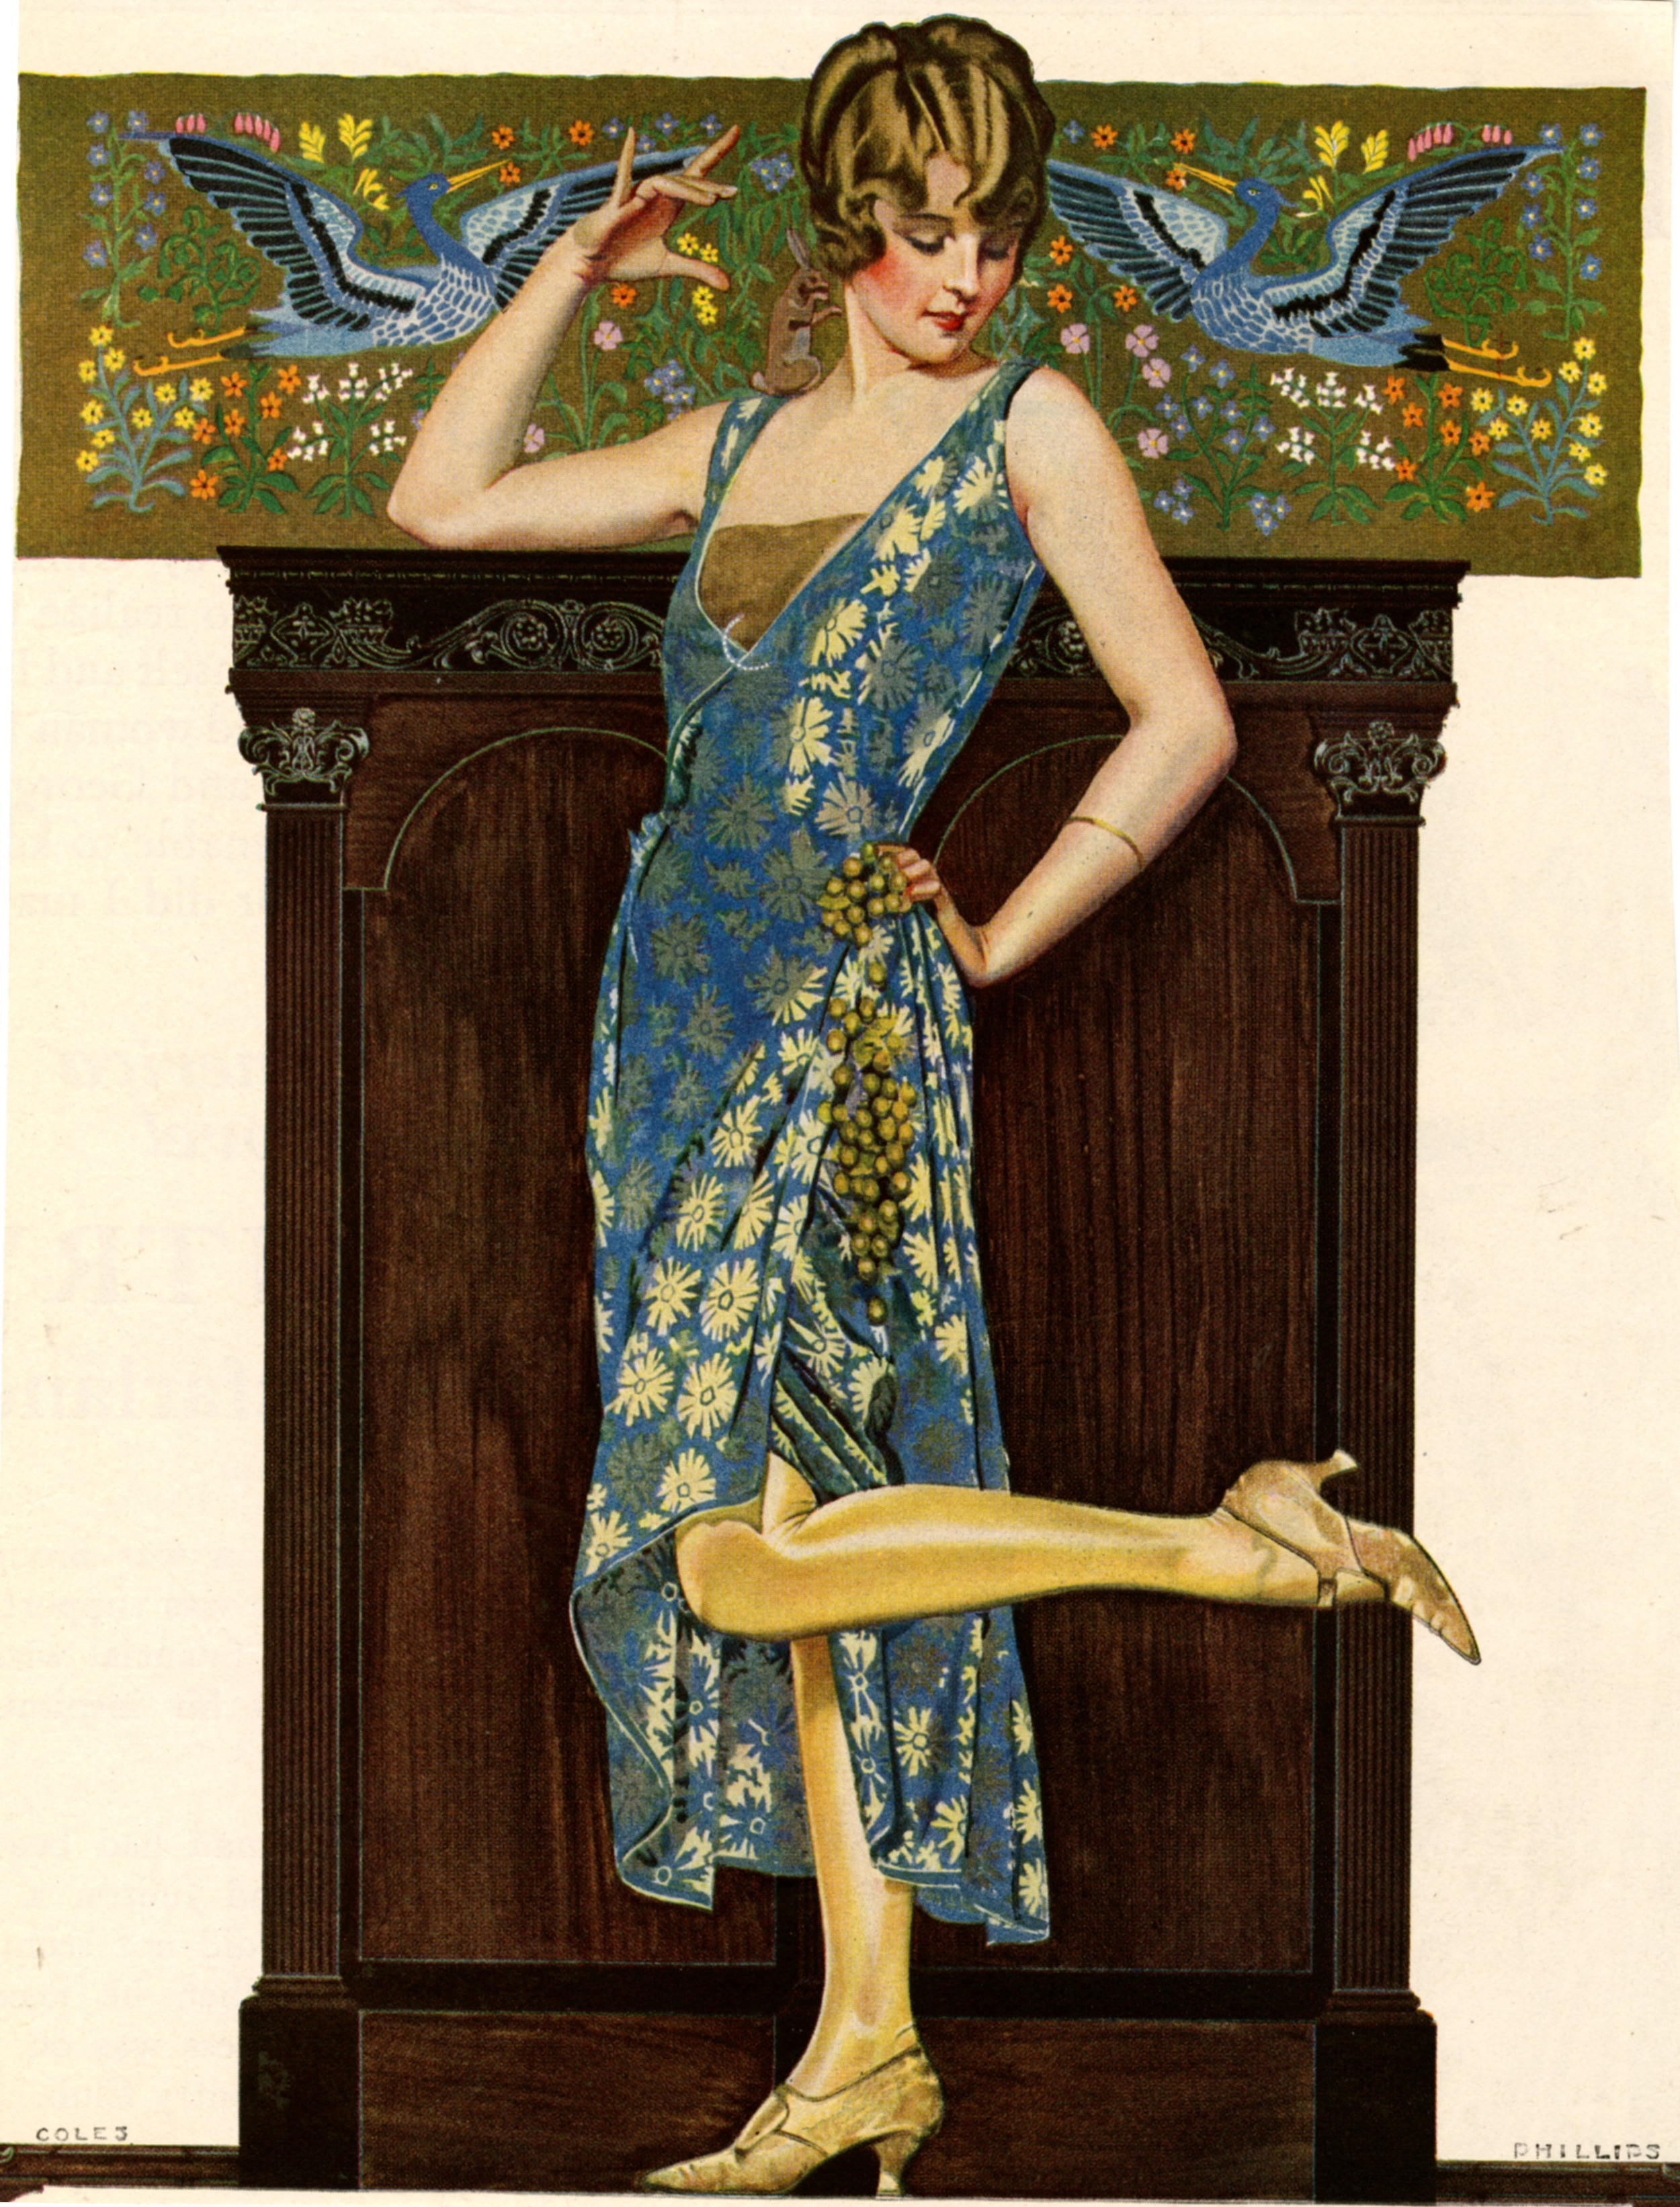 Coles Phillips,  Magazine advertisement for Holeproof Hosiery , 1923.